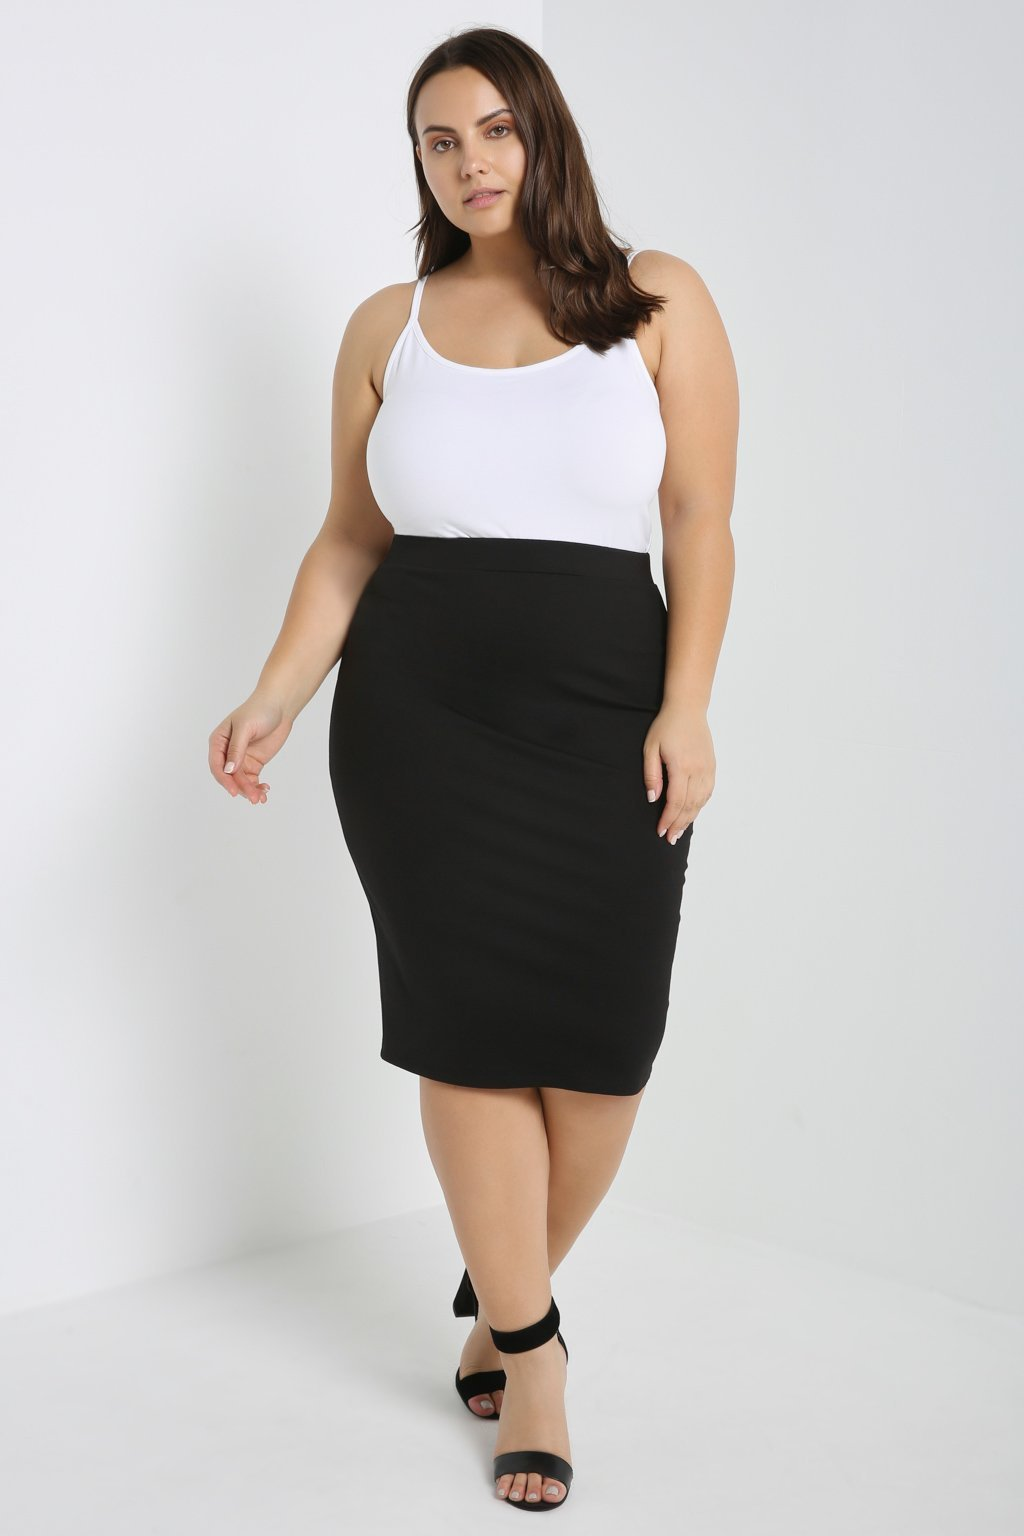 Poshsquare Plus Stretch-Knit Pencil Skirt Plus Size